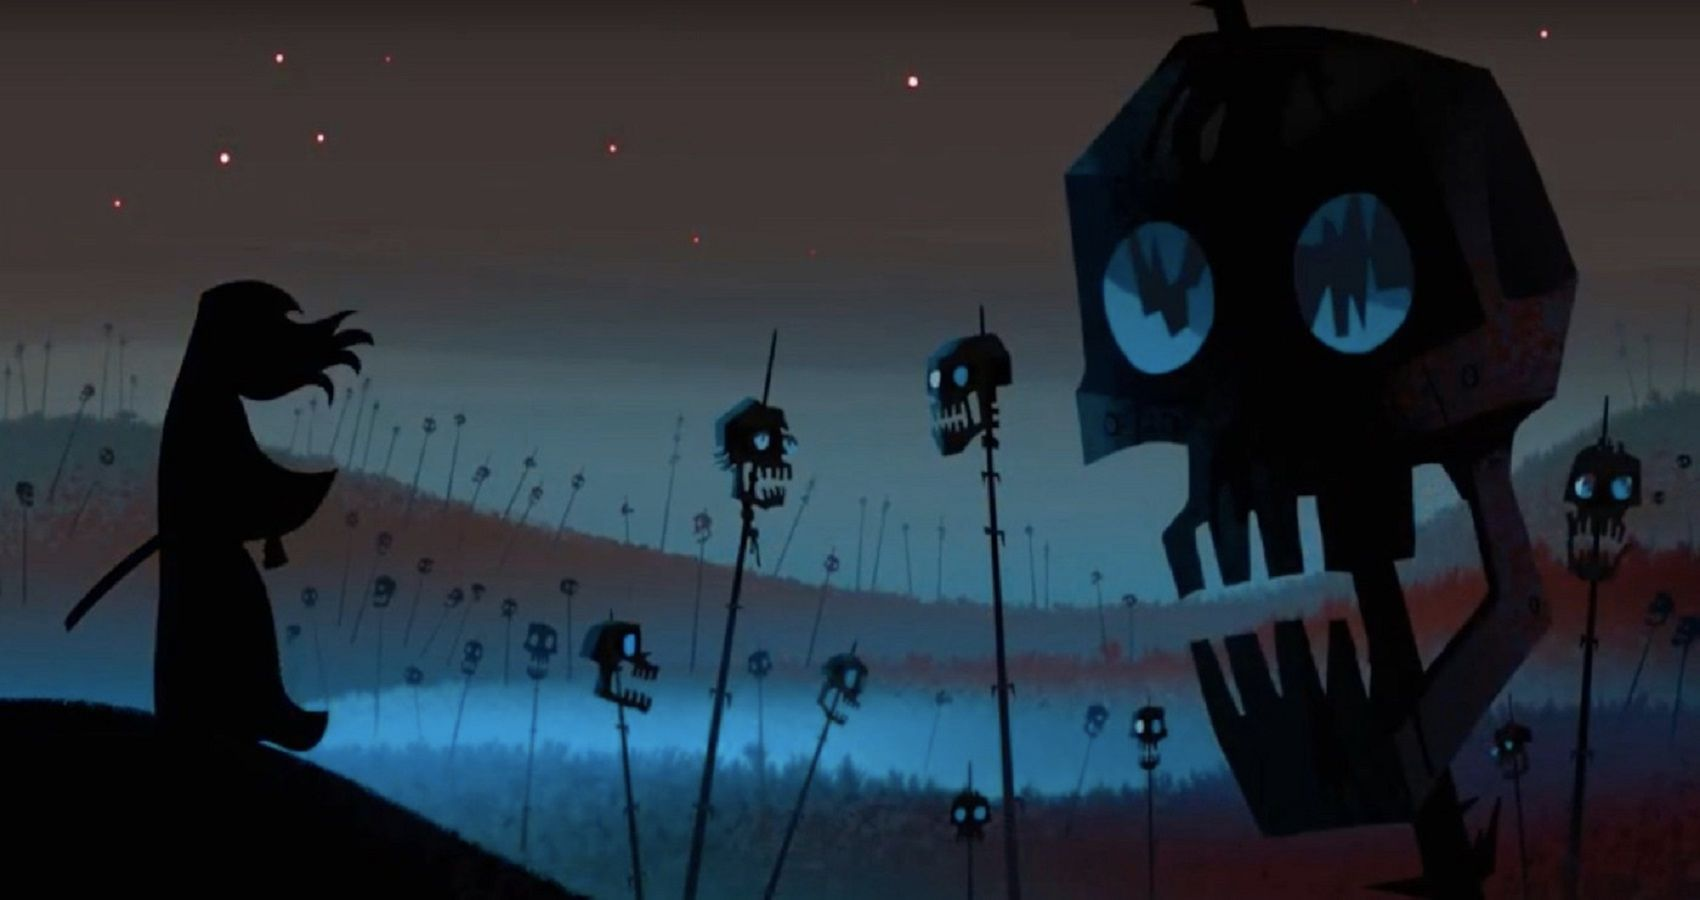 Samurai Jack: 10 Best Episodes Of Season 5 (According To IMDb)